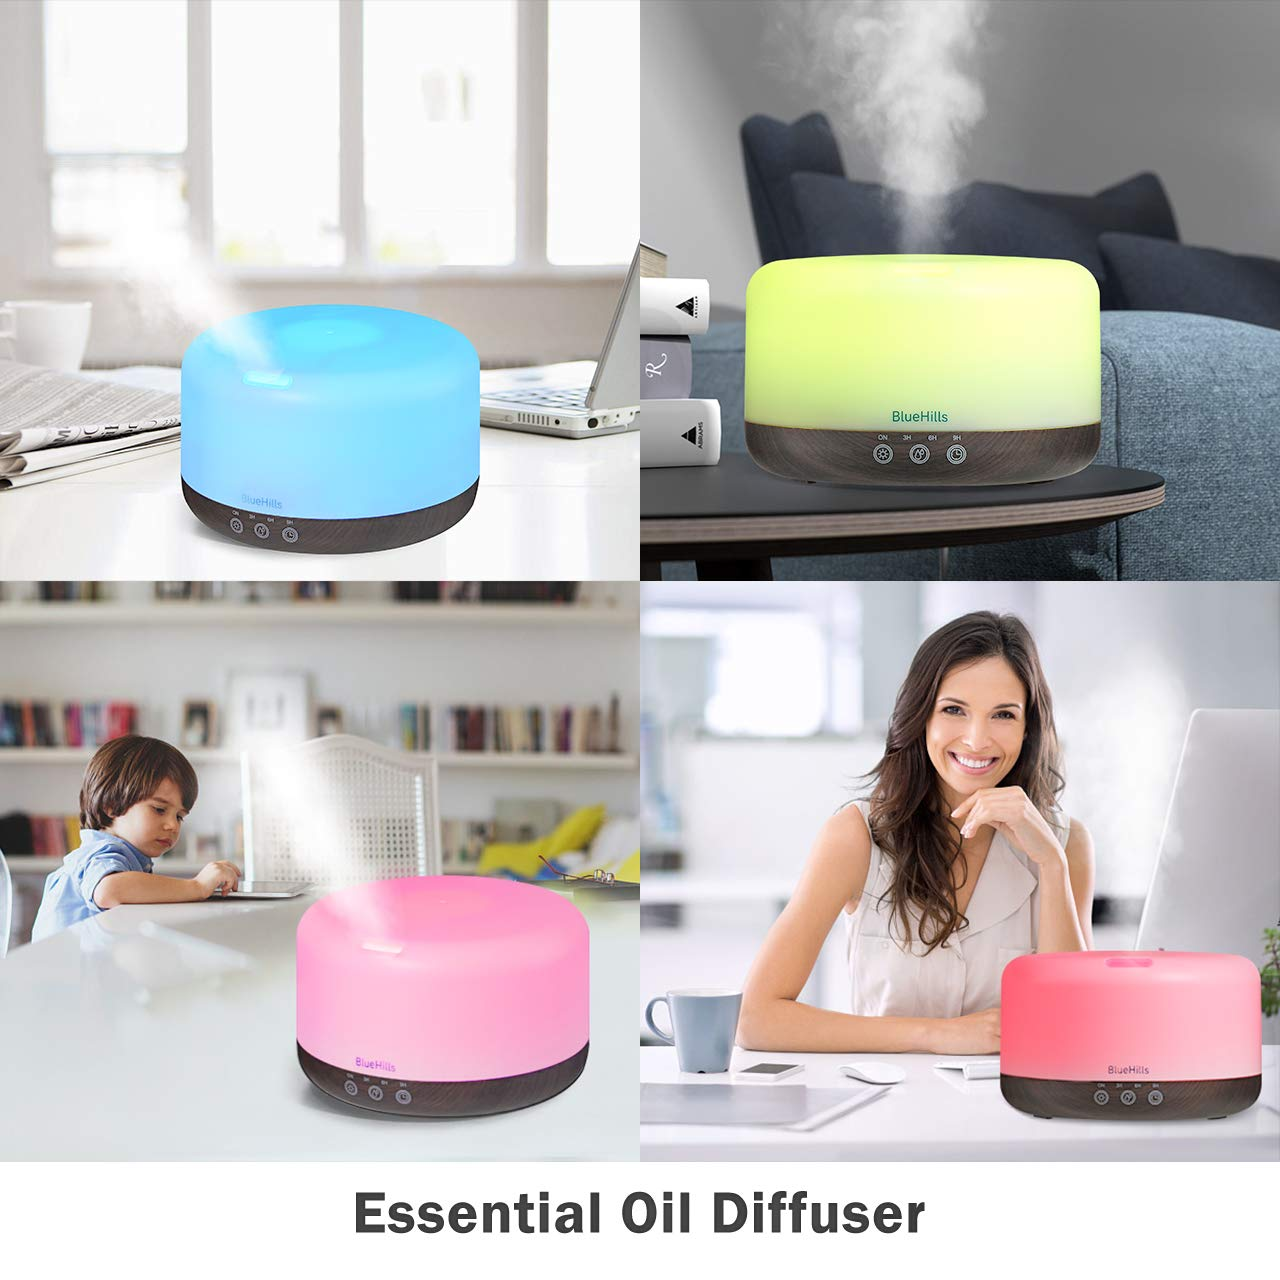 BlueHills Premium 1000 ML XL Essential Oil Diffuser Aromatherapy Humidifier with Remote for Large Room Home 18 Hour Run Huge Coverage Area 1 Liter Lights Extra Large Capacity Dark Wood Grain D002